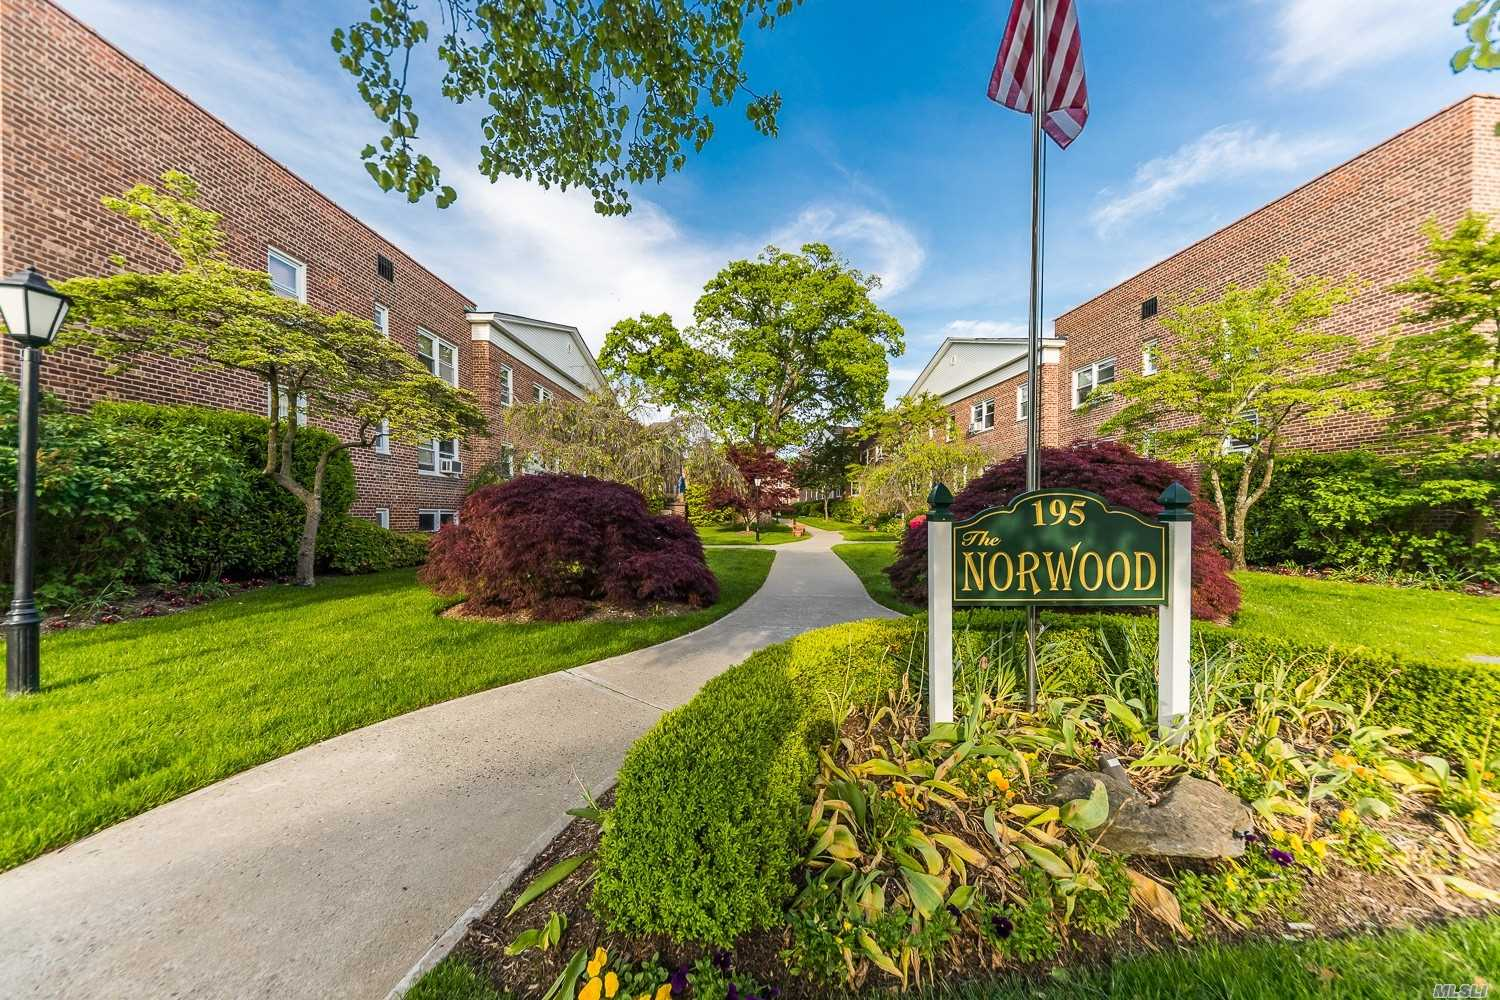 Bright and Sunny 1 Bedroom in the Beautiful Norwood Development. 1st Floor unit with Large Eat In Kitchen and plenty of closets! Storage, Bike Room and Laundry all located in Complex. Close to Village shops, Restaurants, and Train! Low Maintenance and short waiting list for parking!